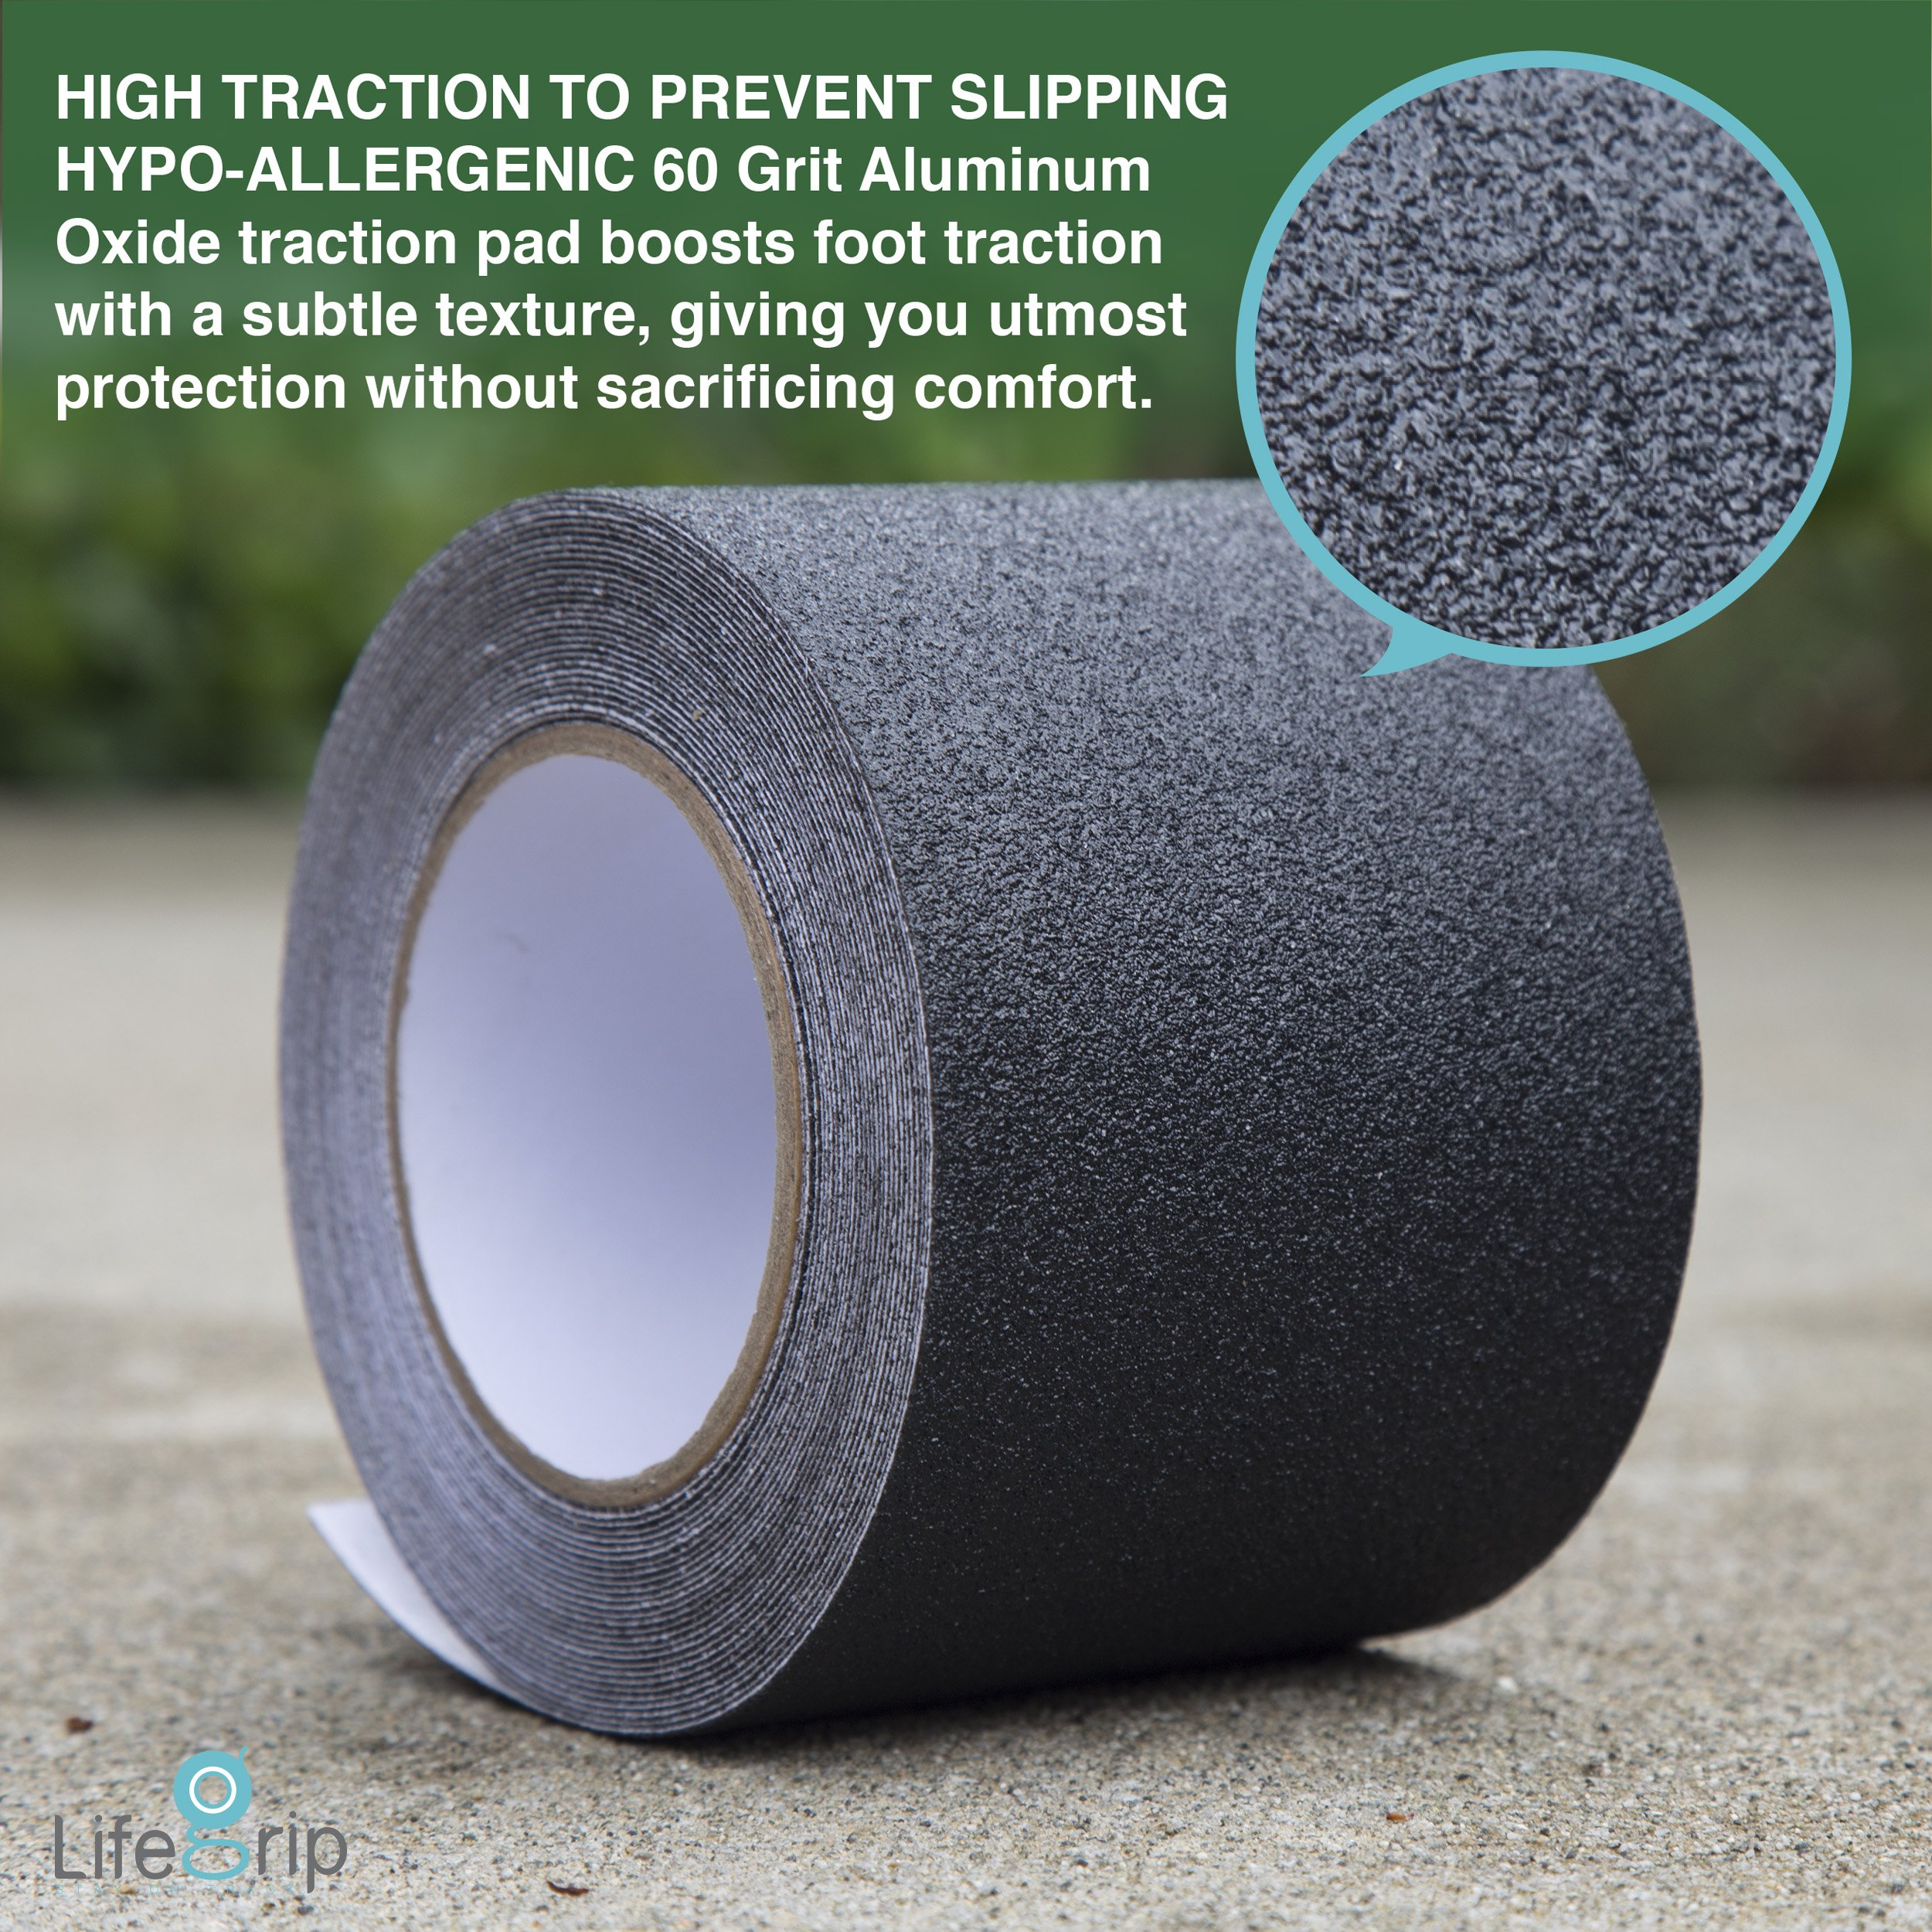 LifeGrip Weather & Water Proof Anti-slip Safety Tape - Black - PET Base Layer - Indoor or Outdoor (4'' x 30')